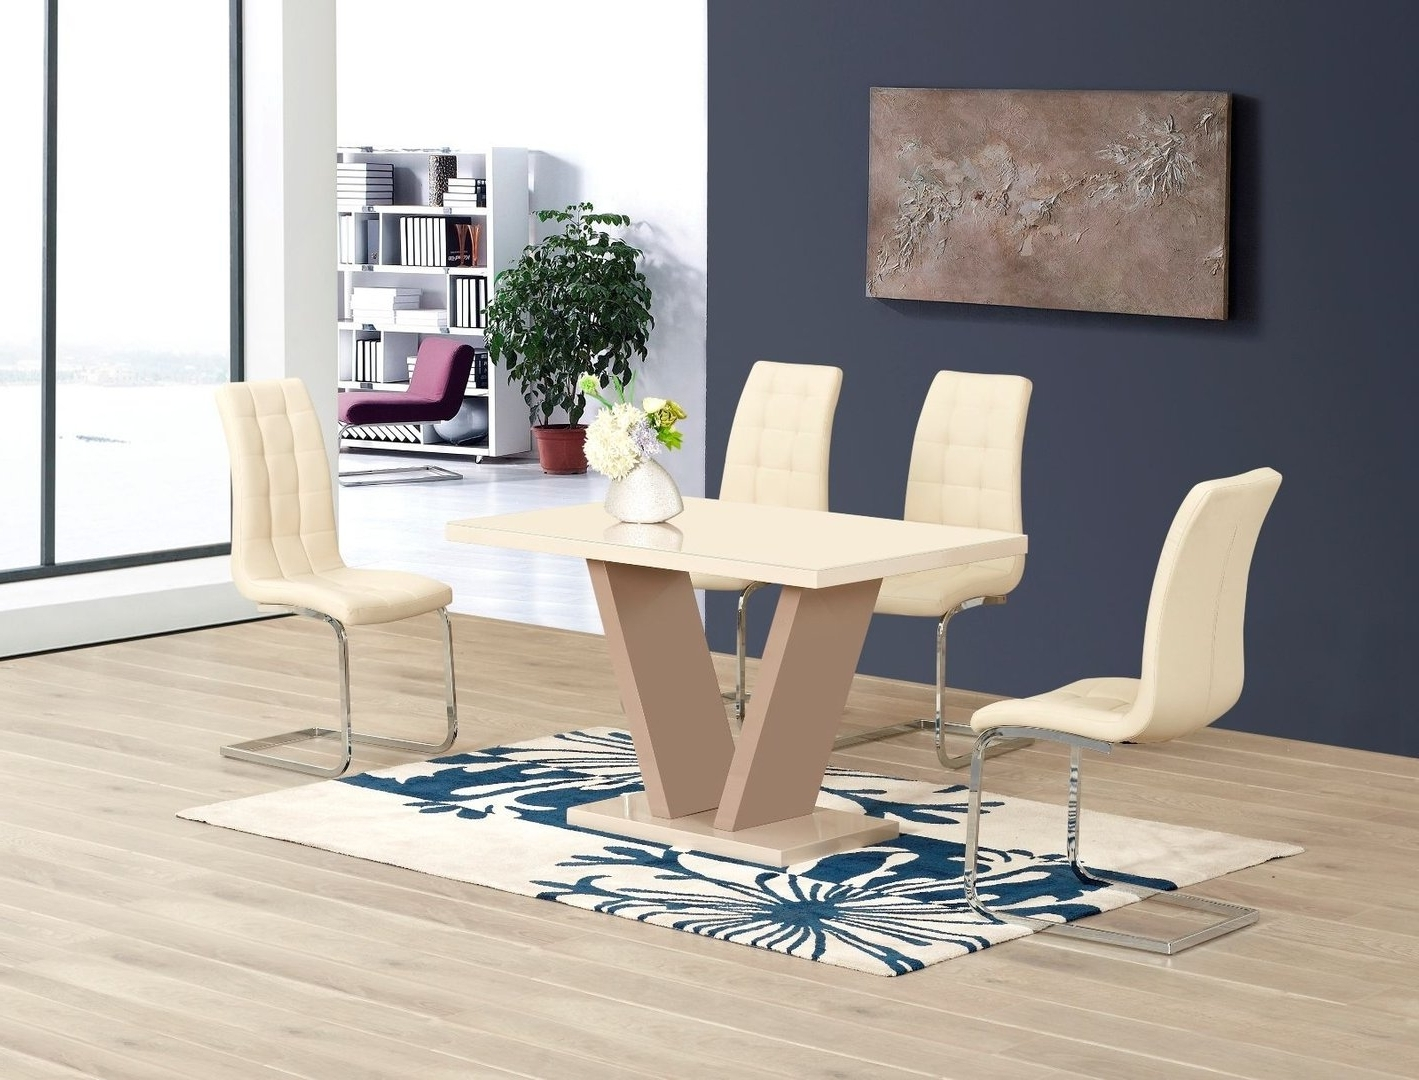 Cream High Gloss Glass Dining Table And 6 Chairs – Homegenies Within Best And Newest White Gloss Dining Tables And 6 Chairs (Gallery 5 of 25)